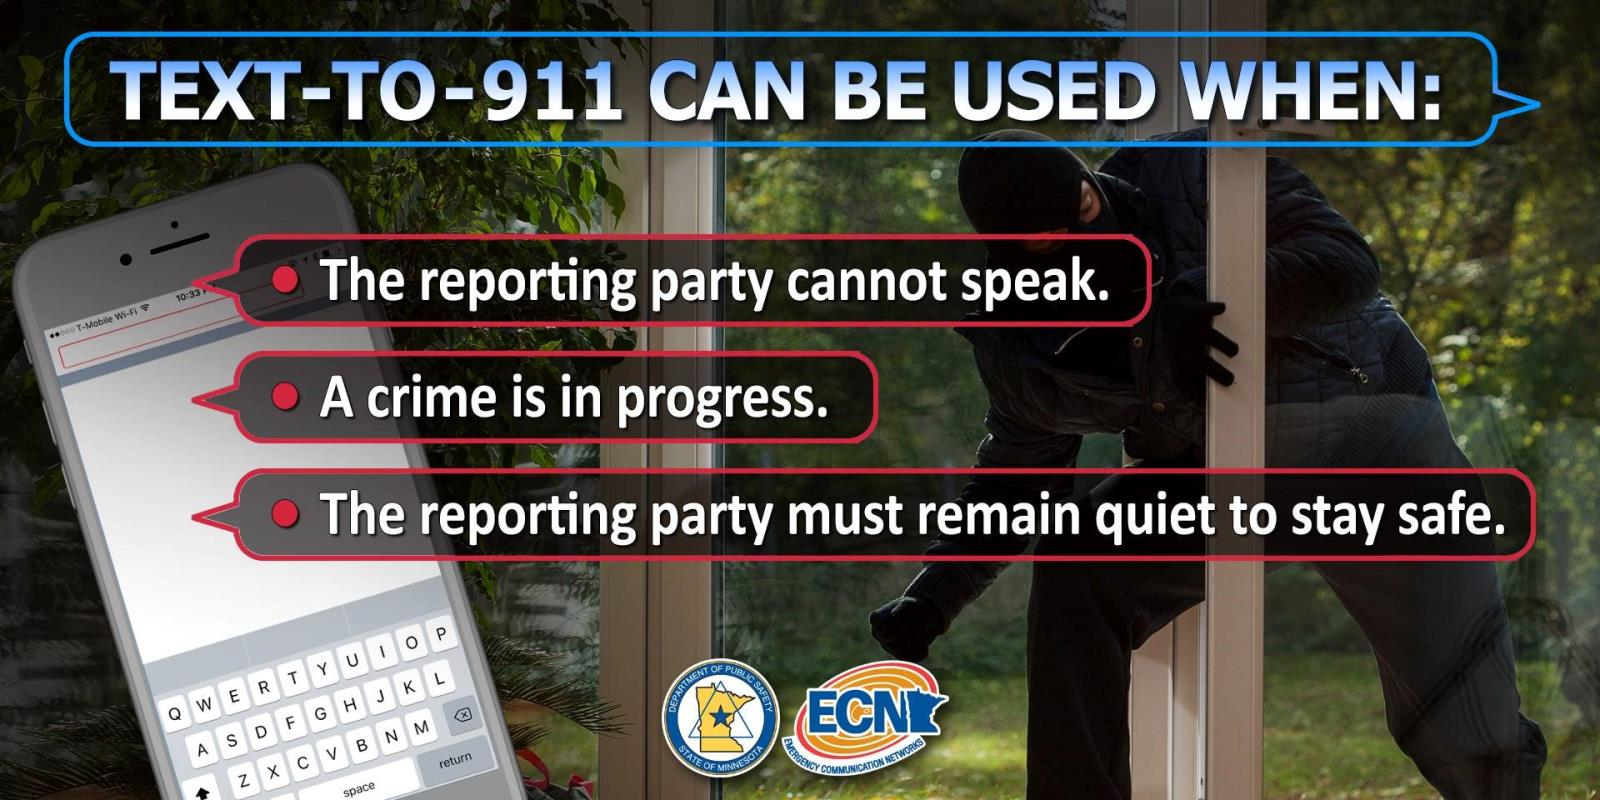 Text To 911 Can Be Used When